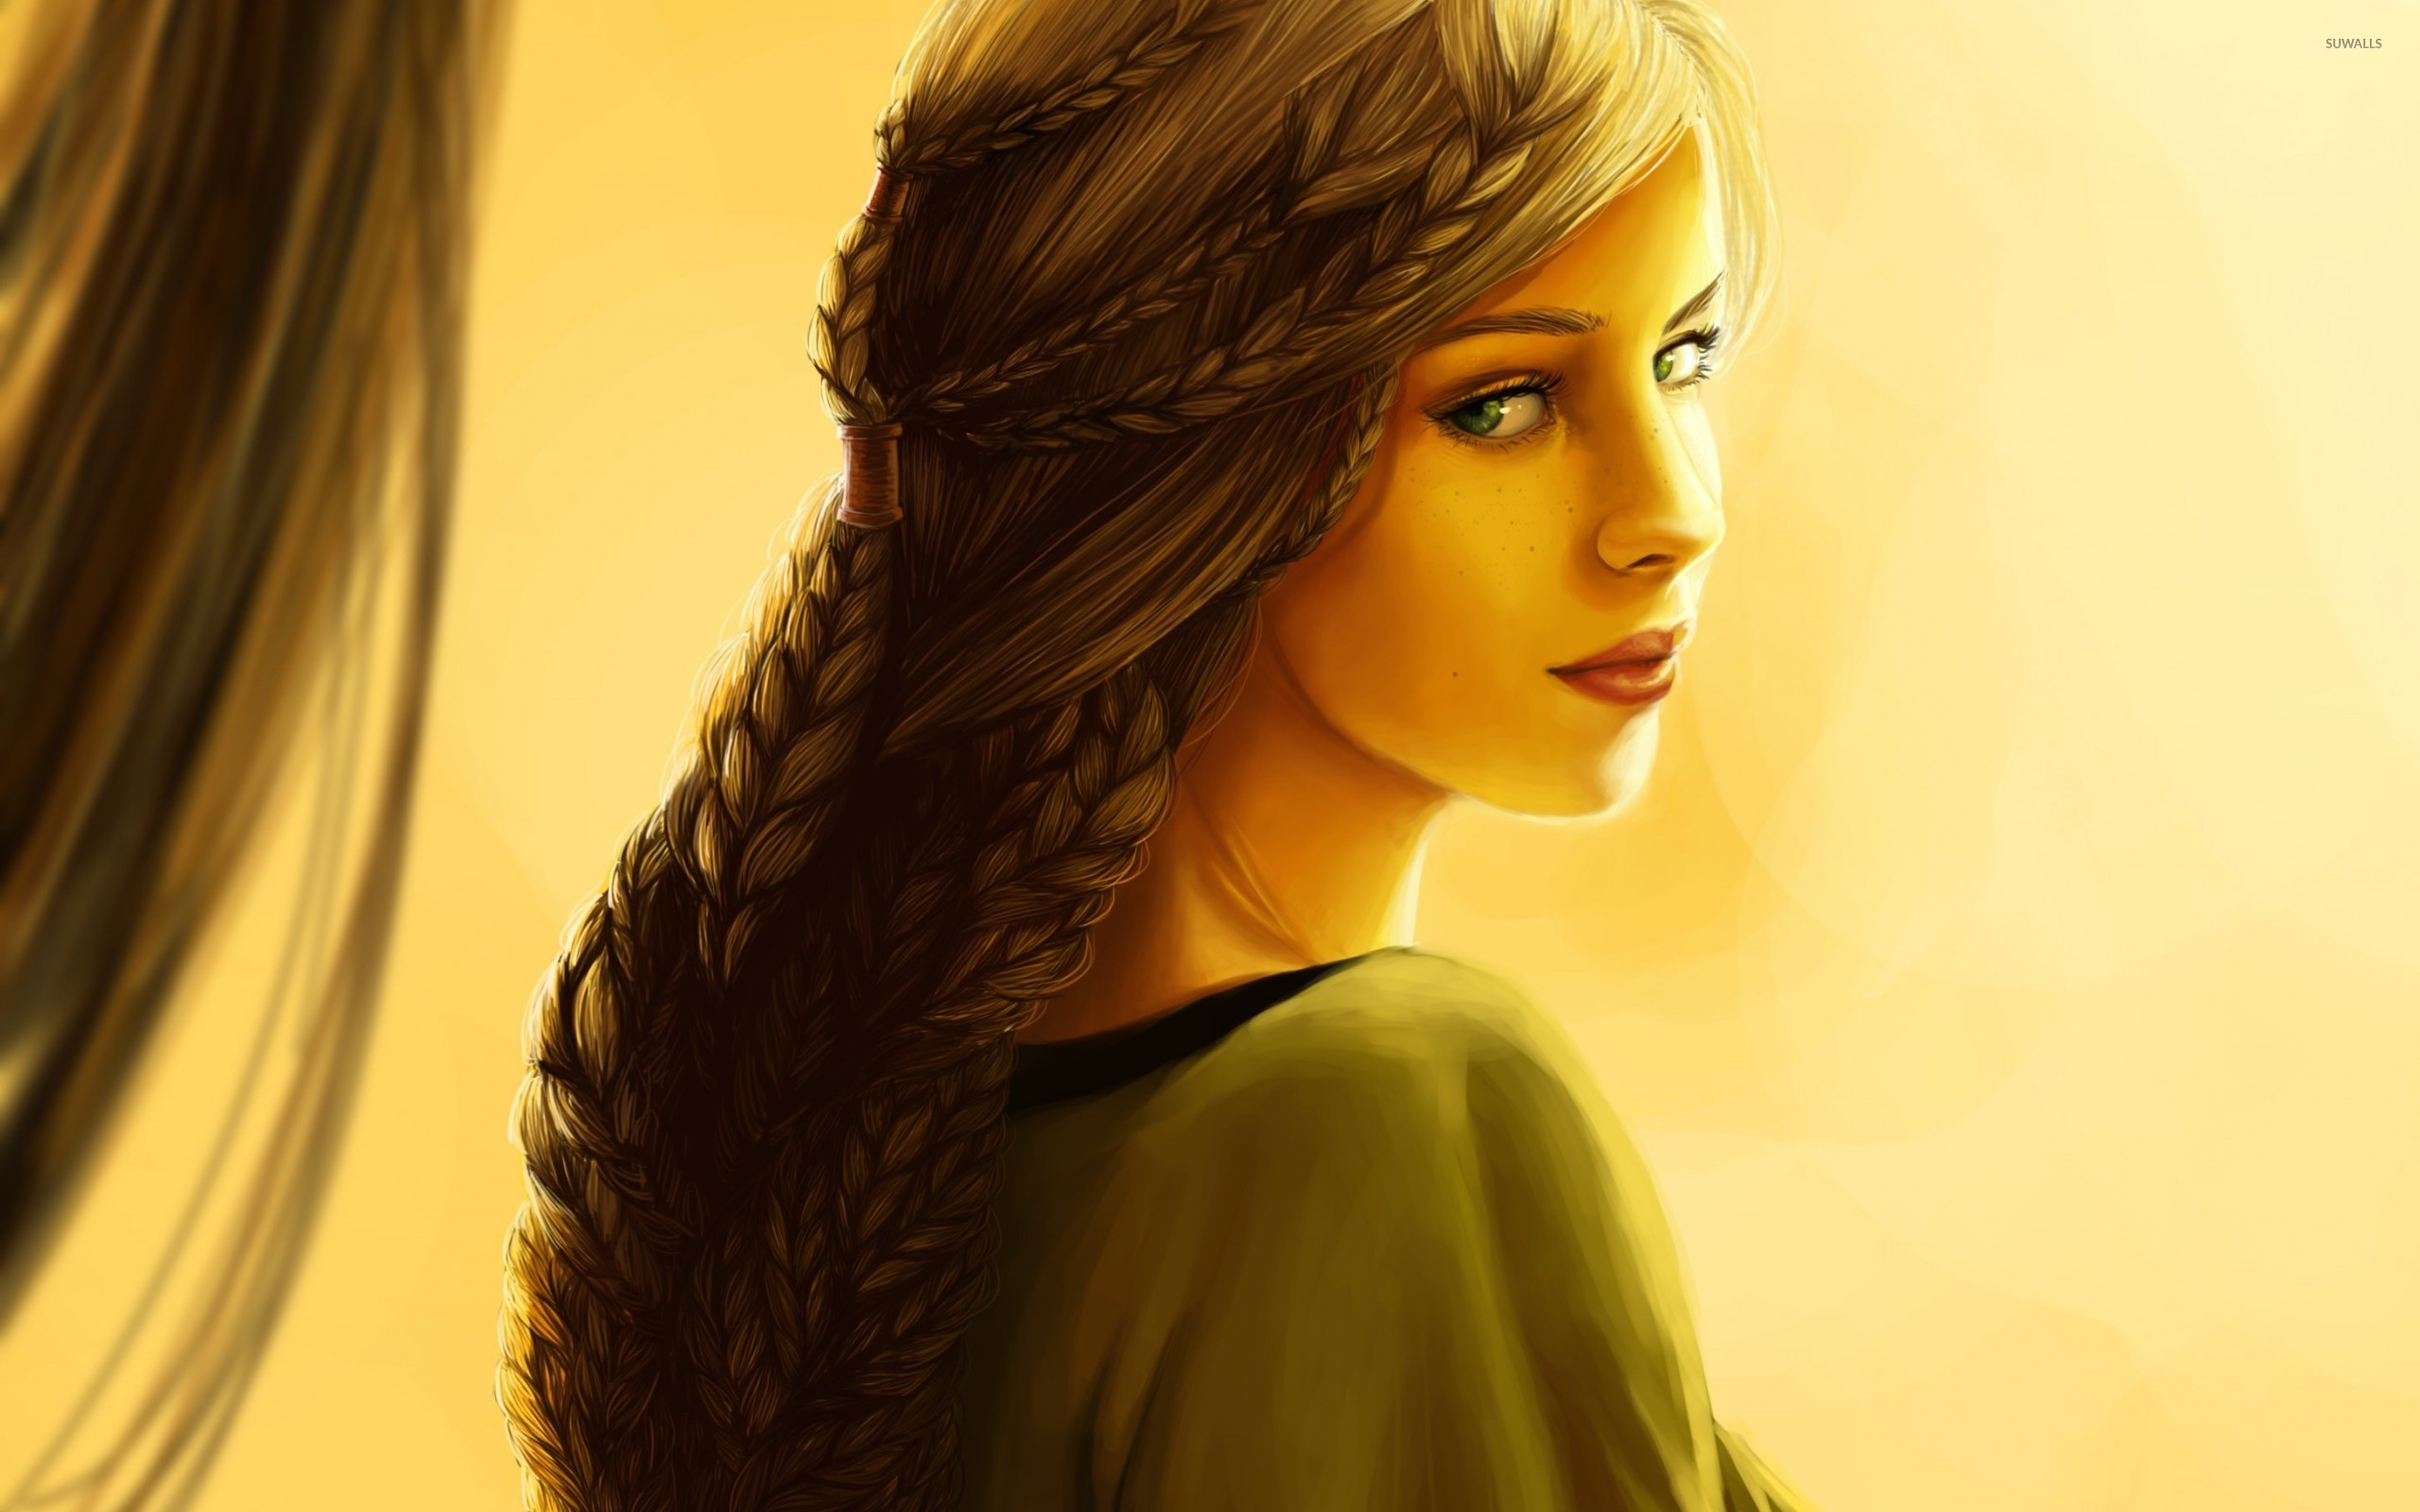 Beautiful Girl With Green Eyes Wallpaper Artistic Wallpapers 38713